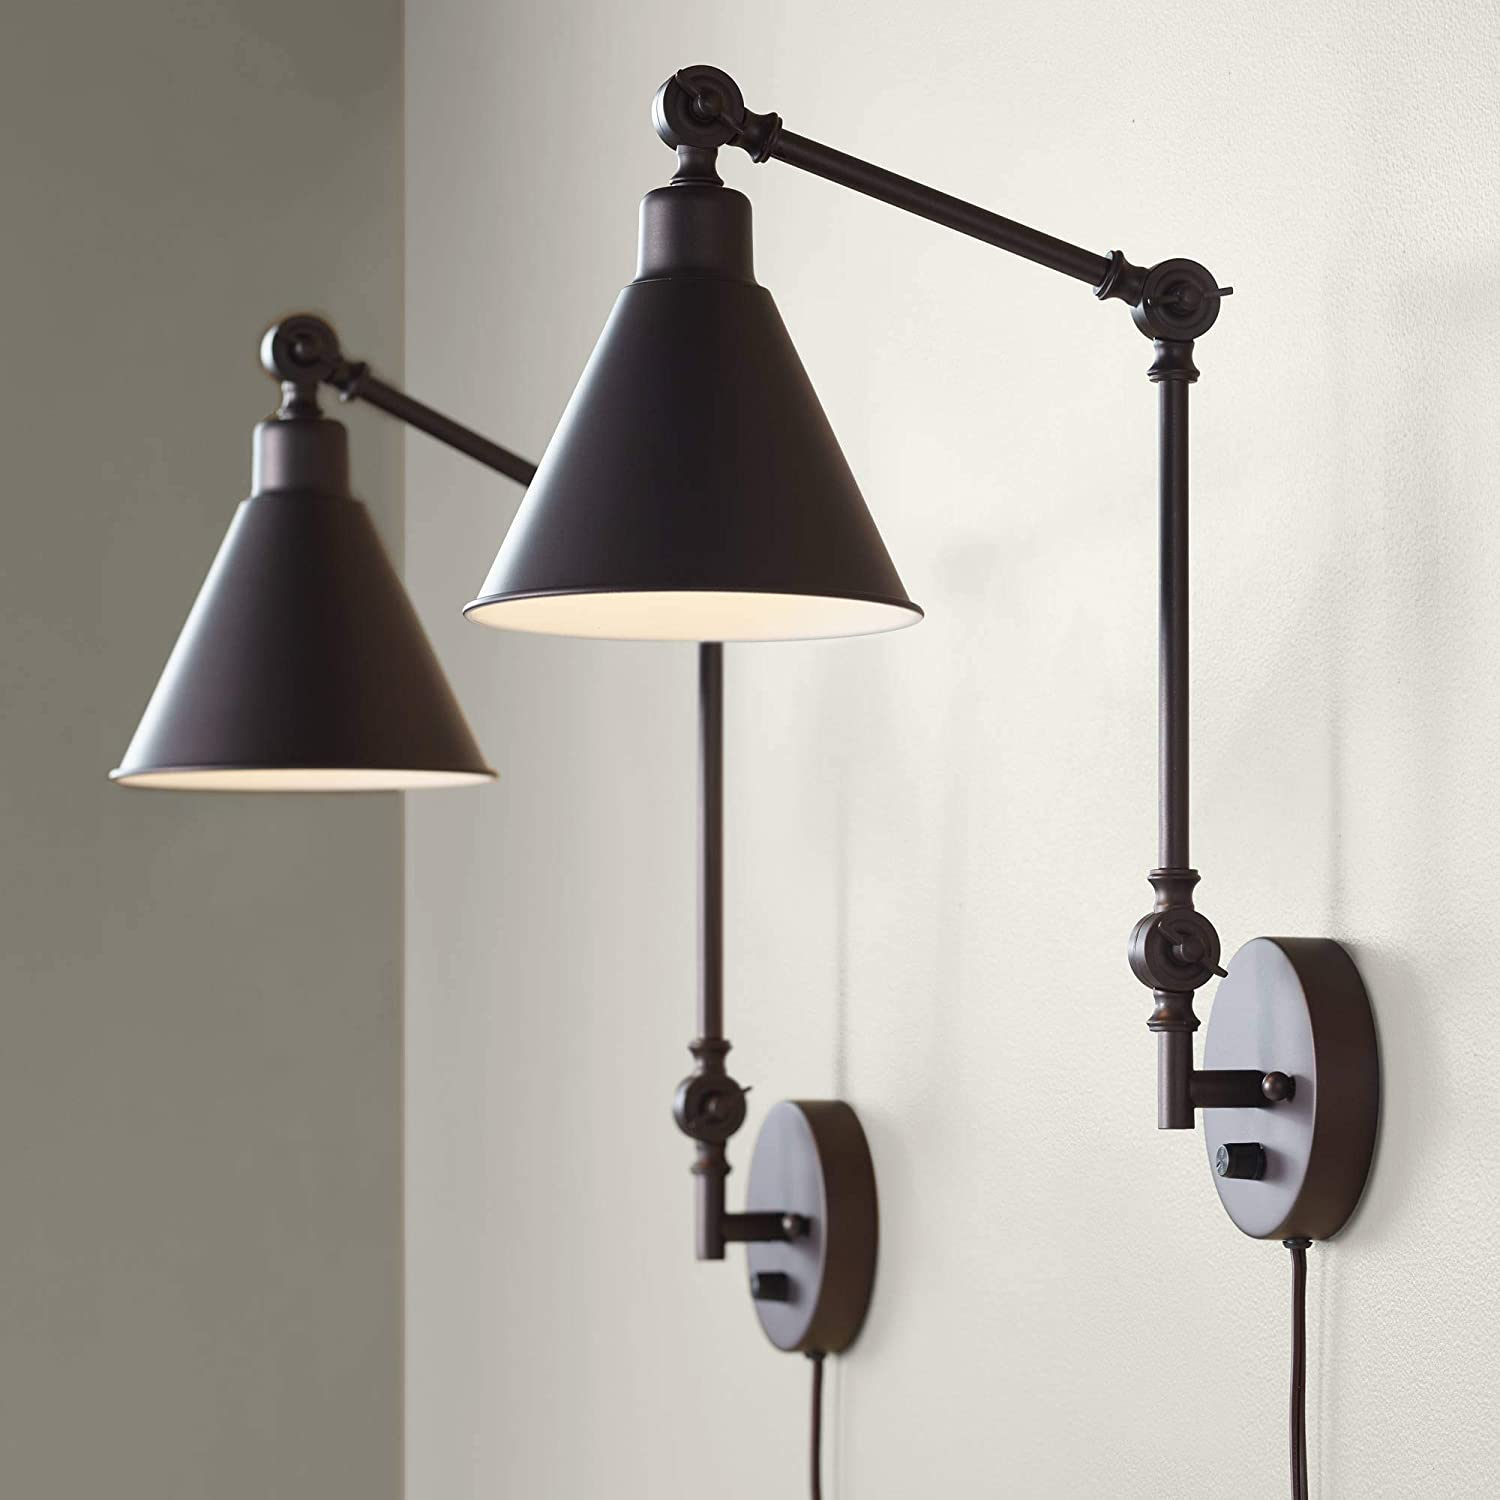 Wray Modern Industrial Up Down Swing Arm Wall Lights Set of 2 Lamps Dark Brown Sconce for Bedroom Reading